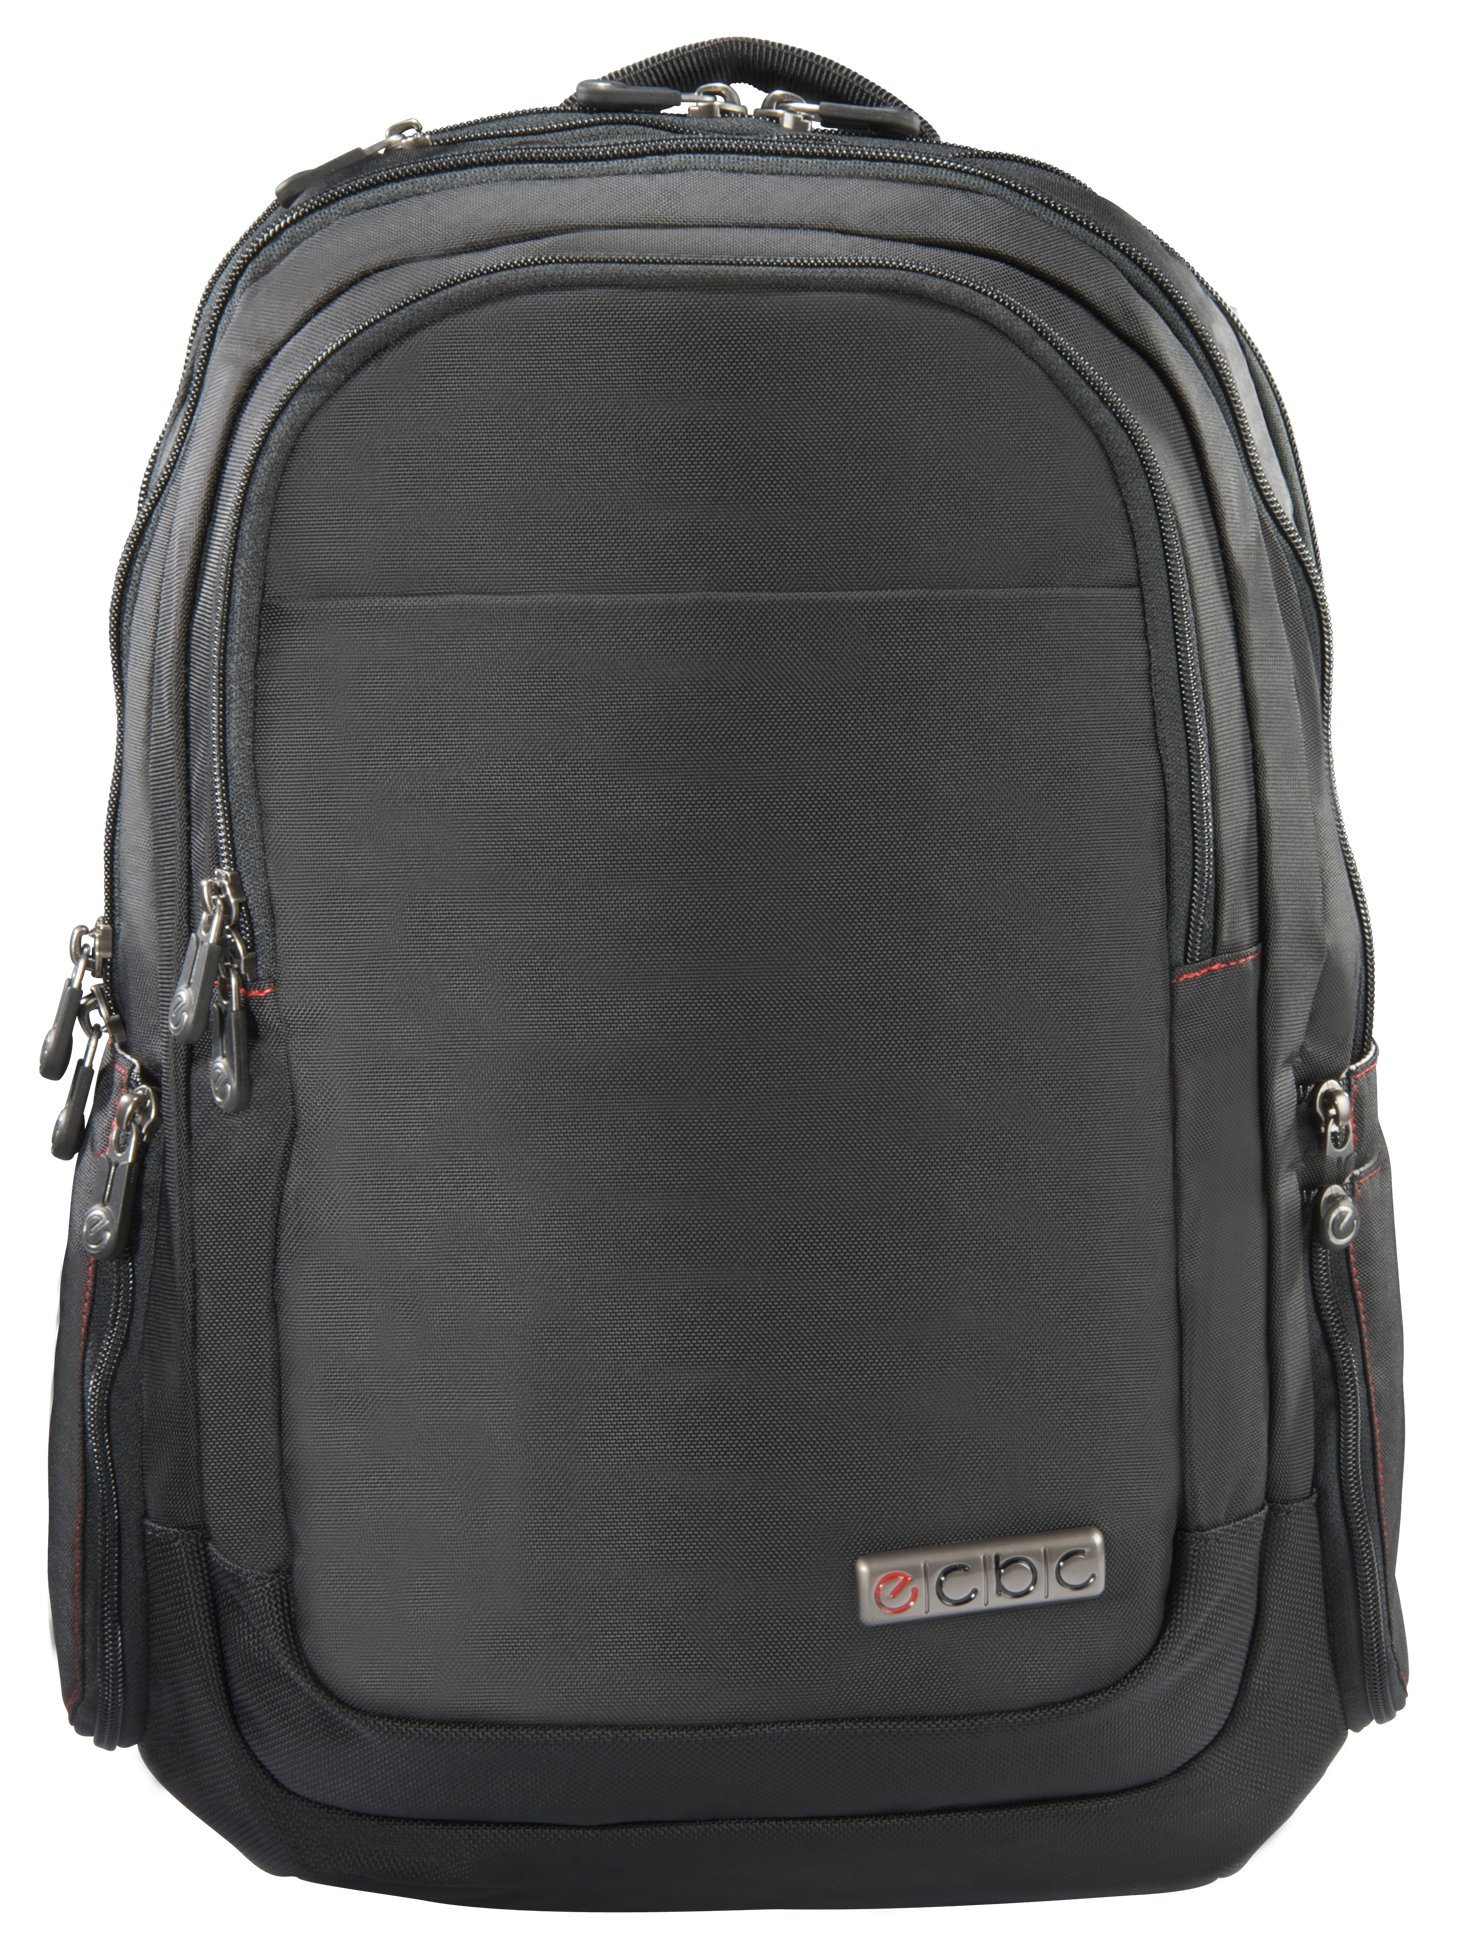 ECBC Javelin - Backpack Computer Bag - Black (B7102-10) Daypack for Laptops, MacBooks & Devices Up to 16.5'' - Travel, School or Business Backpack for Men & Women - Premium Quality, TSA FastPass Friendly by ECBC (Image #3)